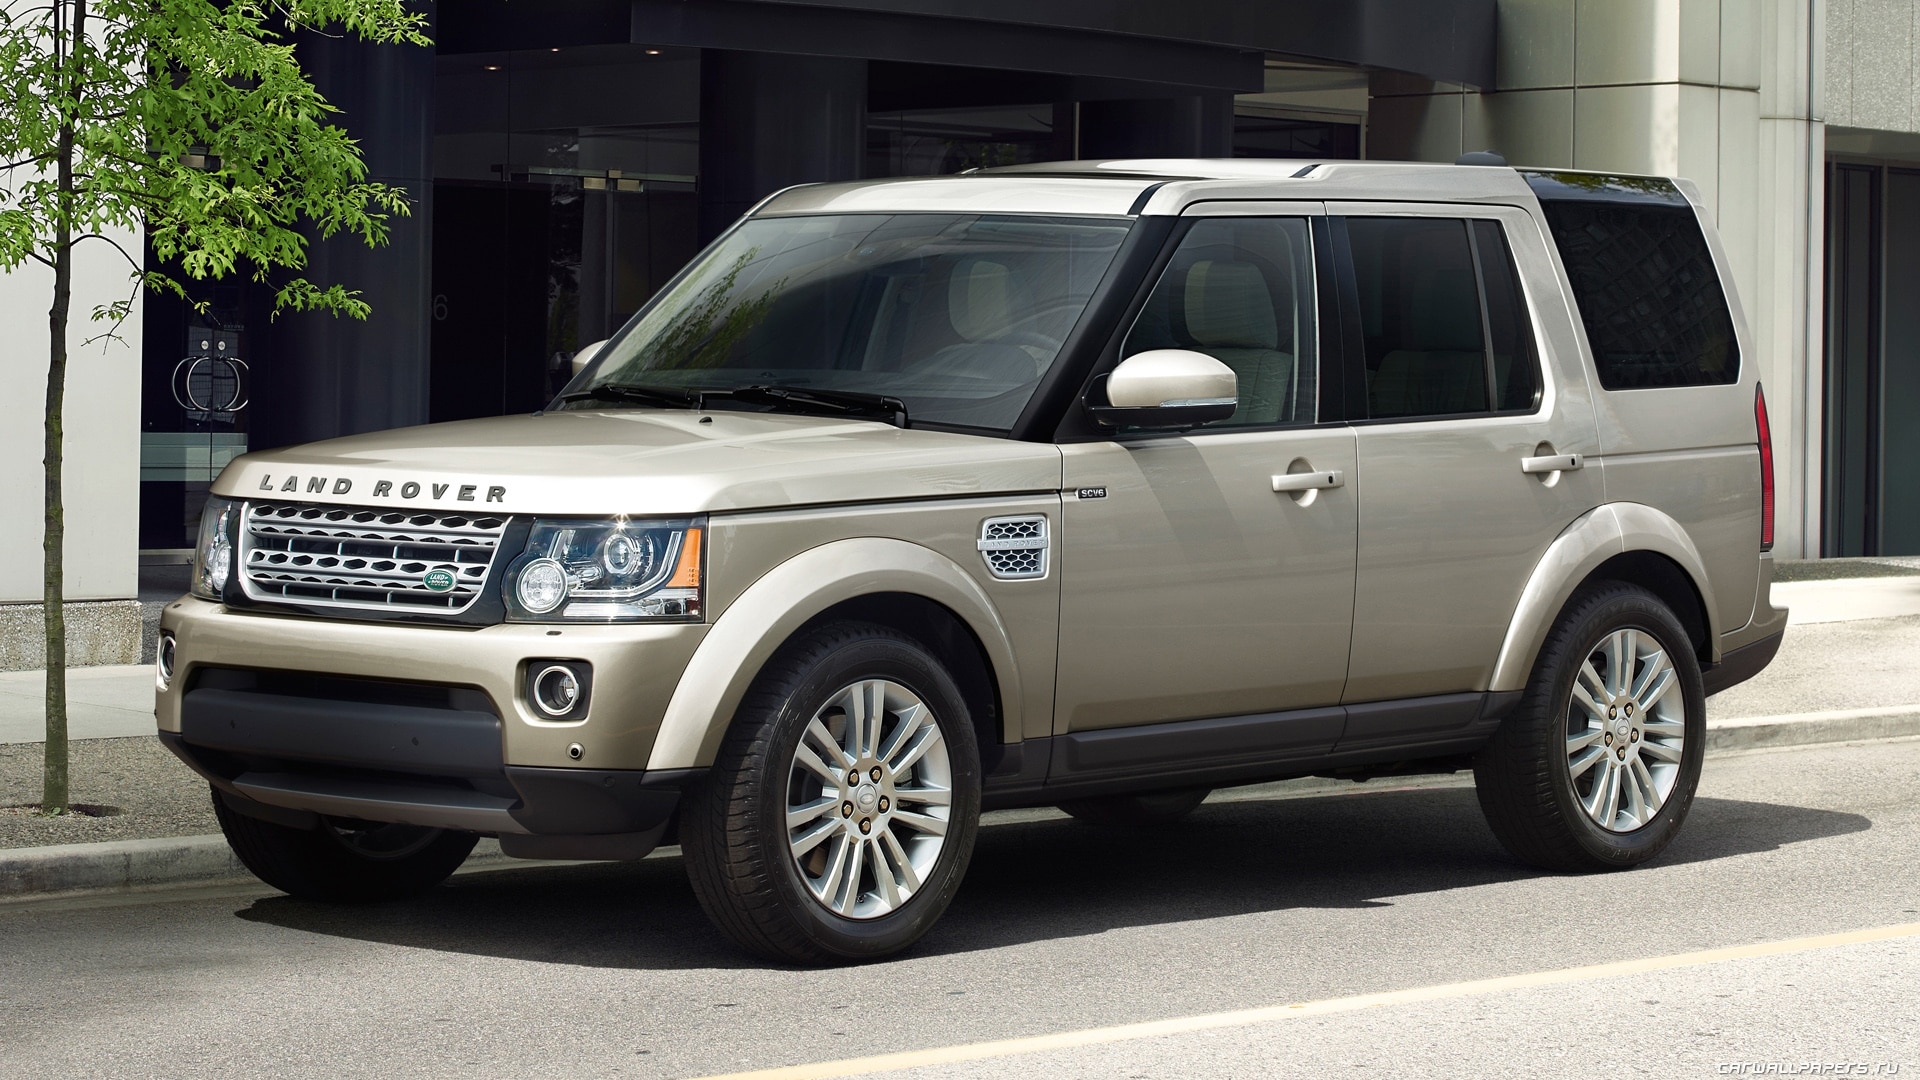 Land Rover West Chester >> 2014 Land Rover LR4 vs Mercedes GL450 | Land Rover West Chester